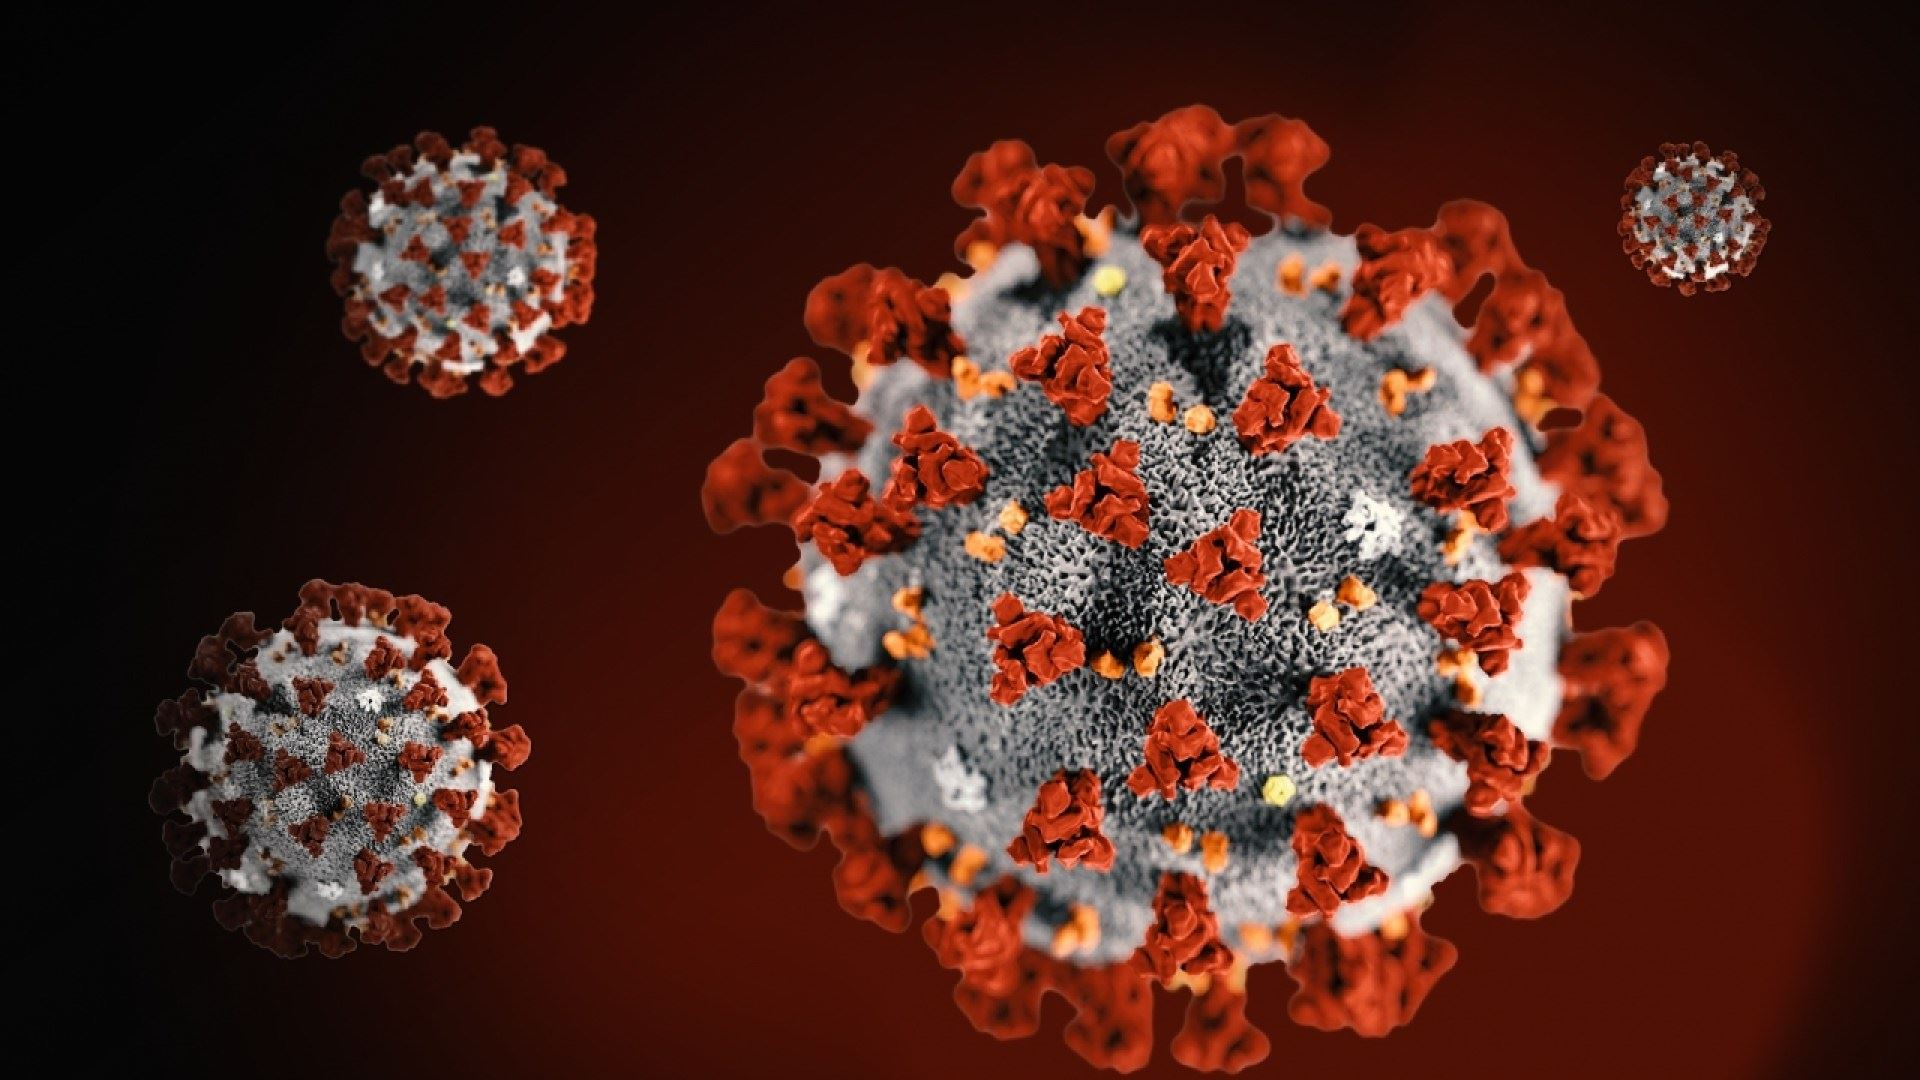 Microscopic Image of COVID-19 Virus